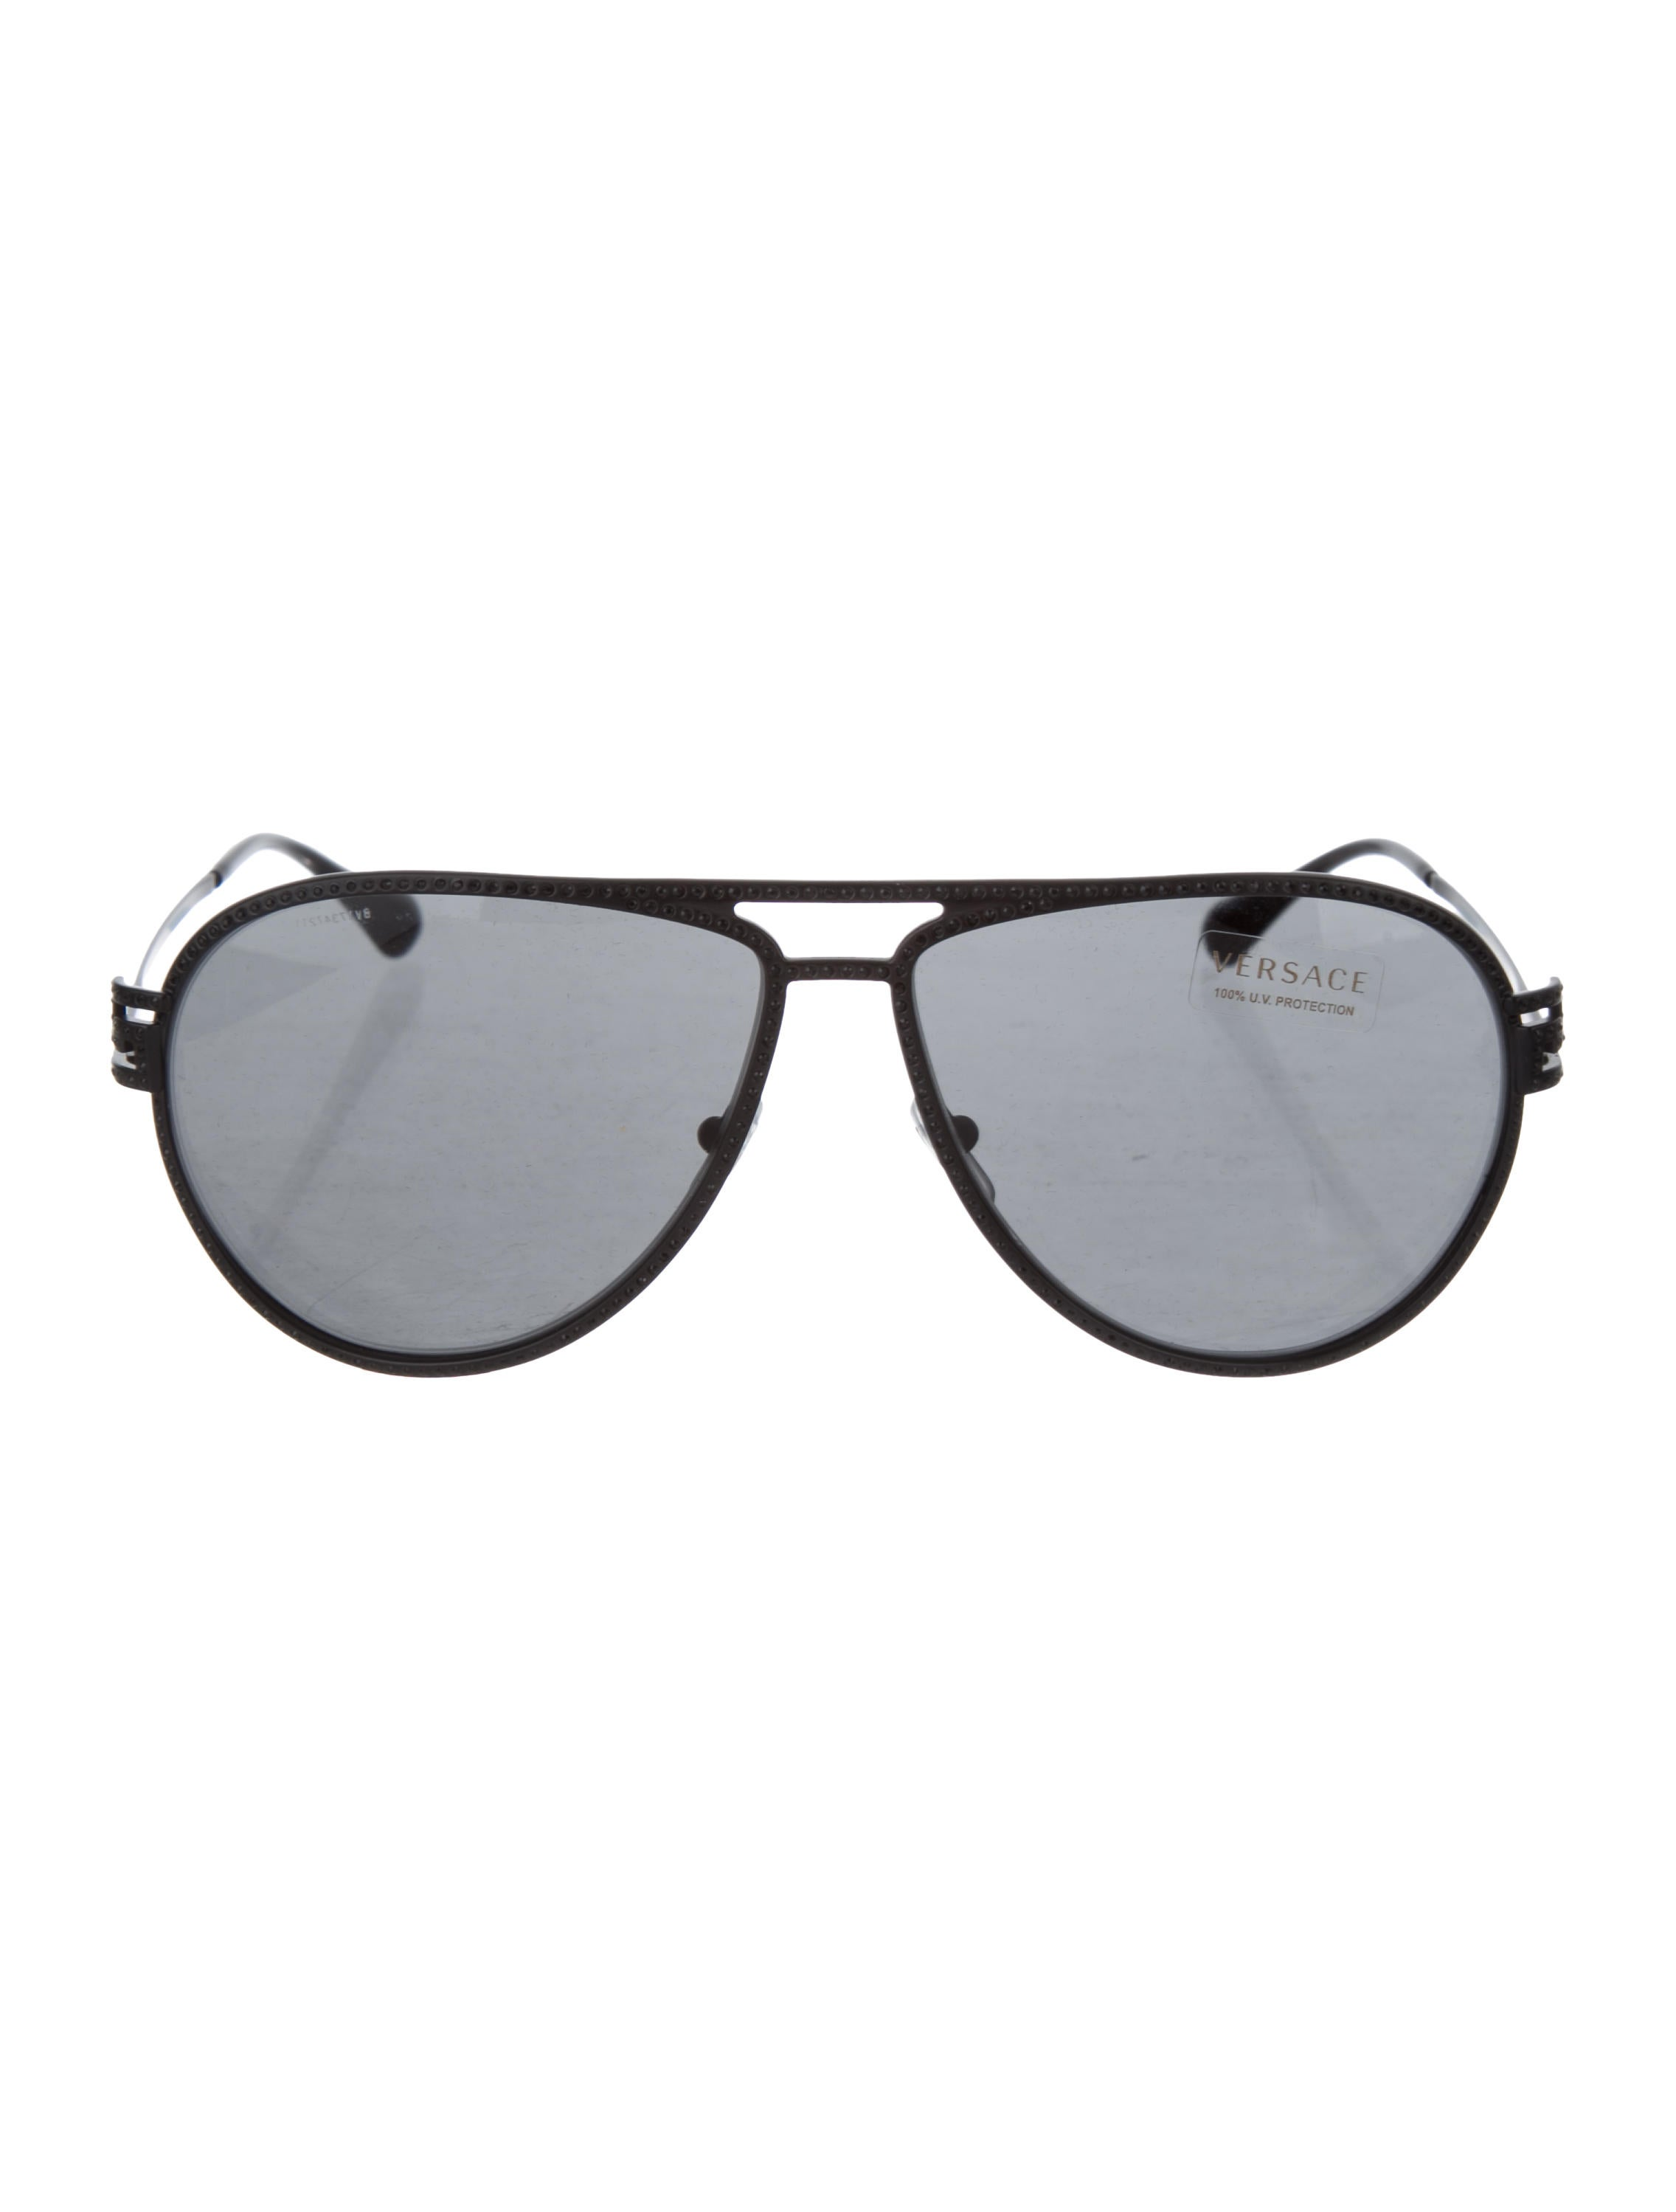 270a69d873af Versace Embellished Aviator Sunglasses - Accessories - VES39835 ...